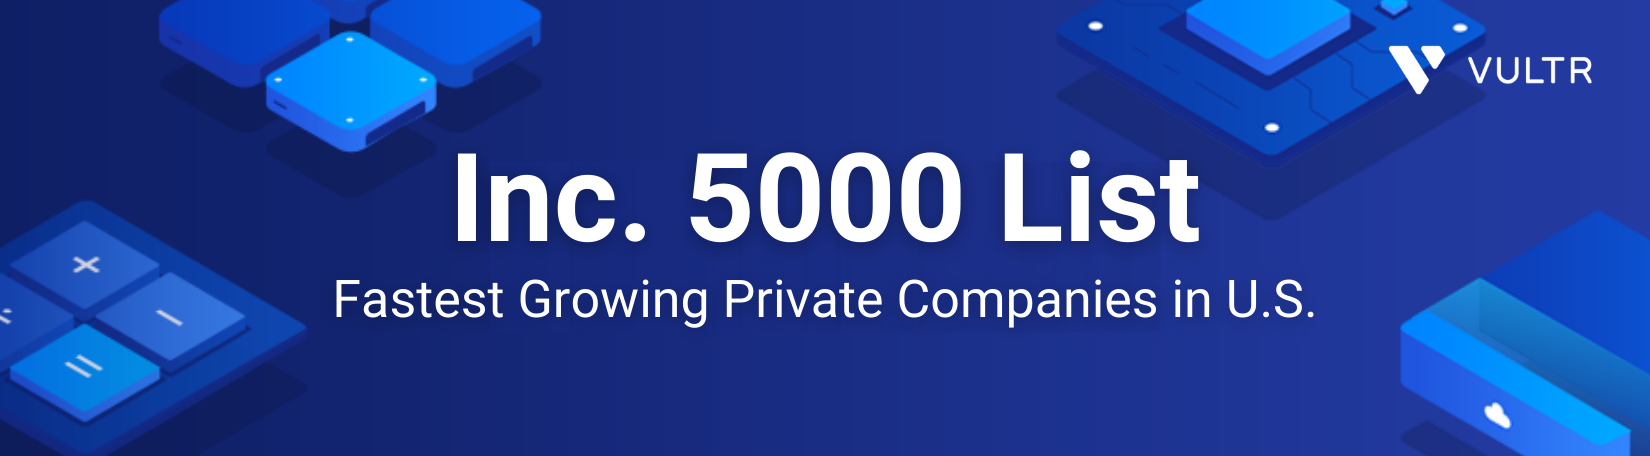 Vultr Creator Recognized on Inc. 5000 List